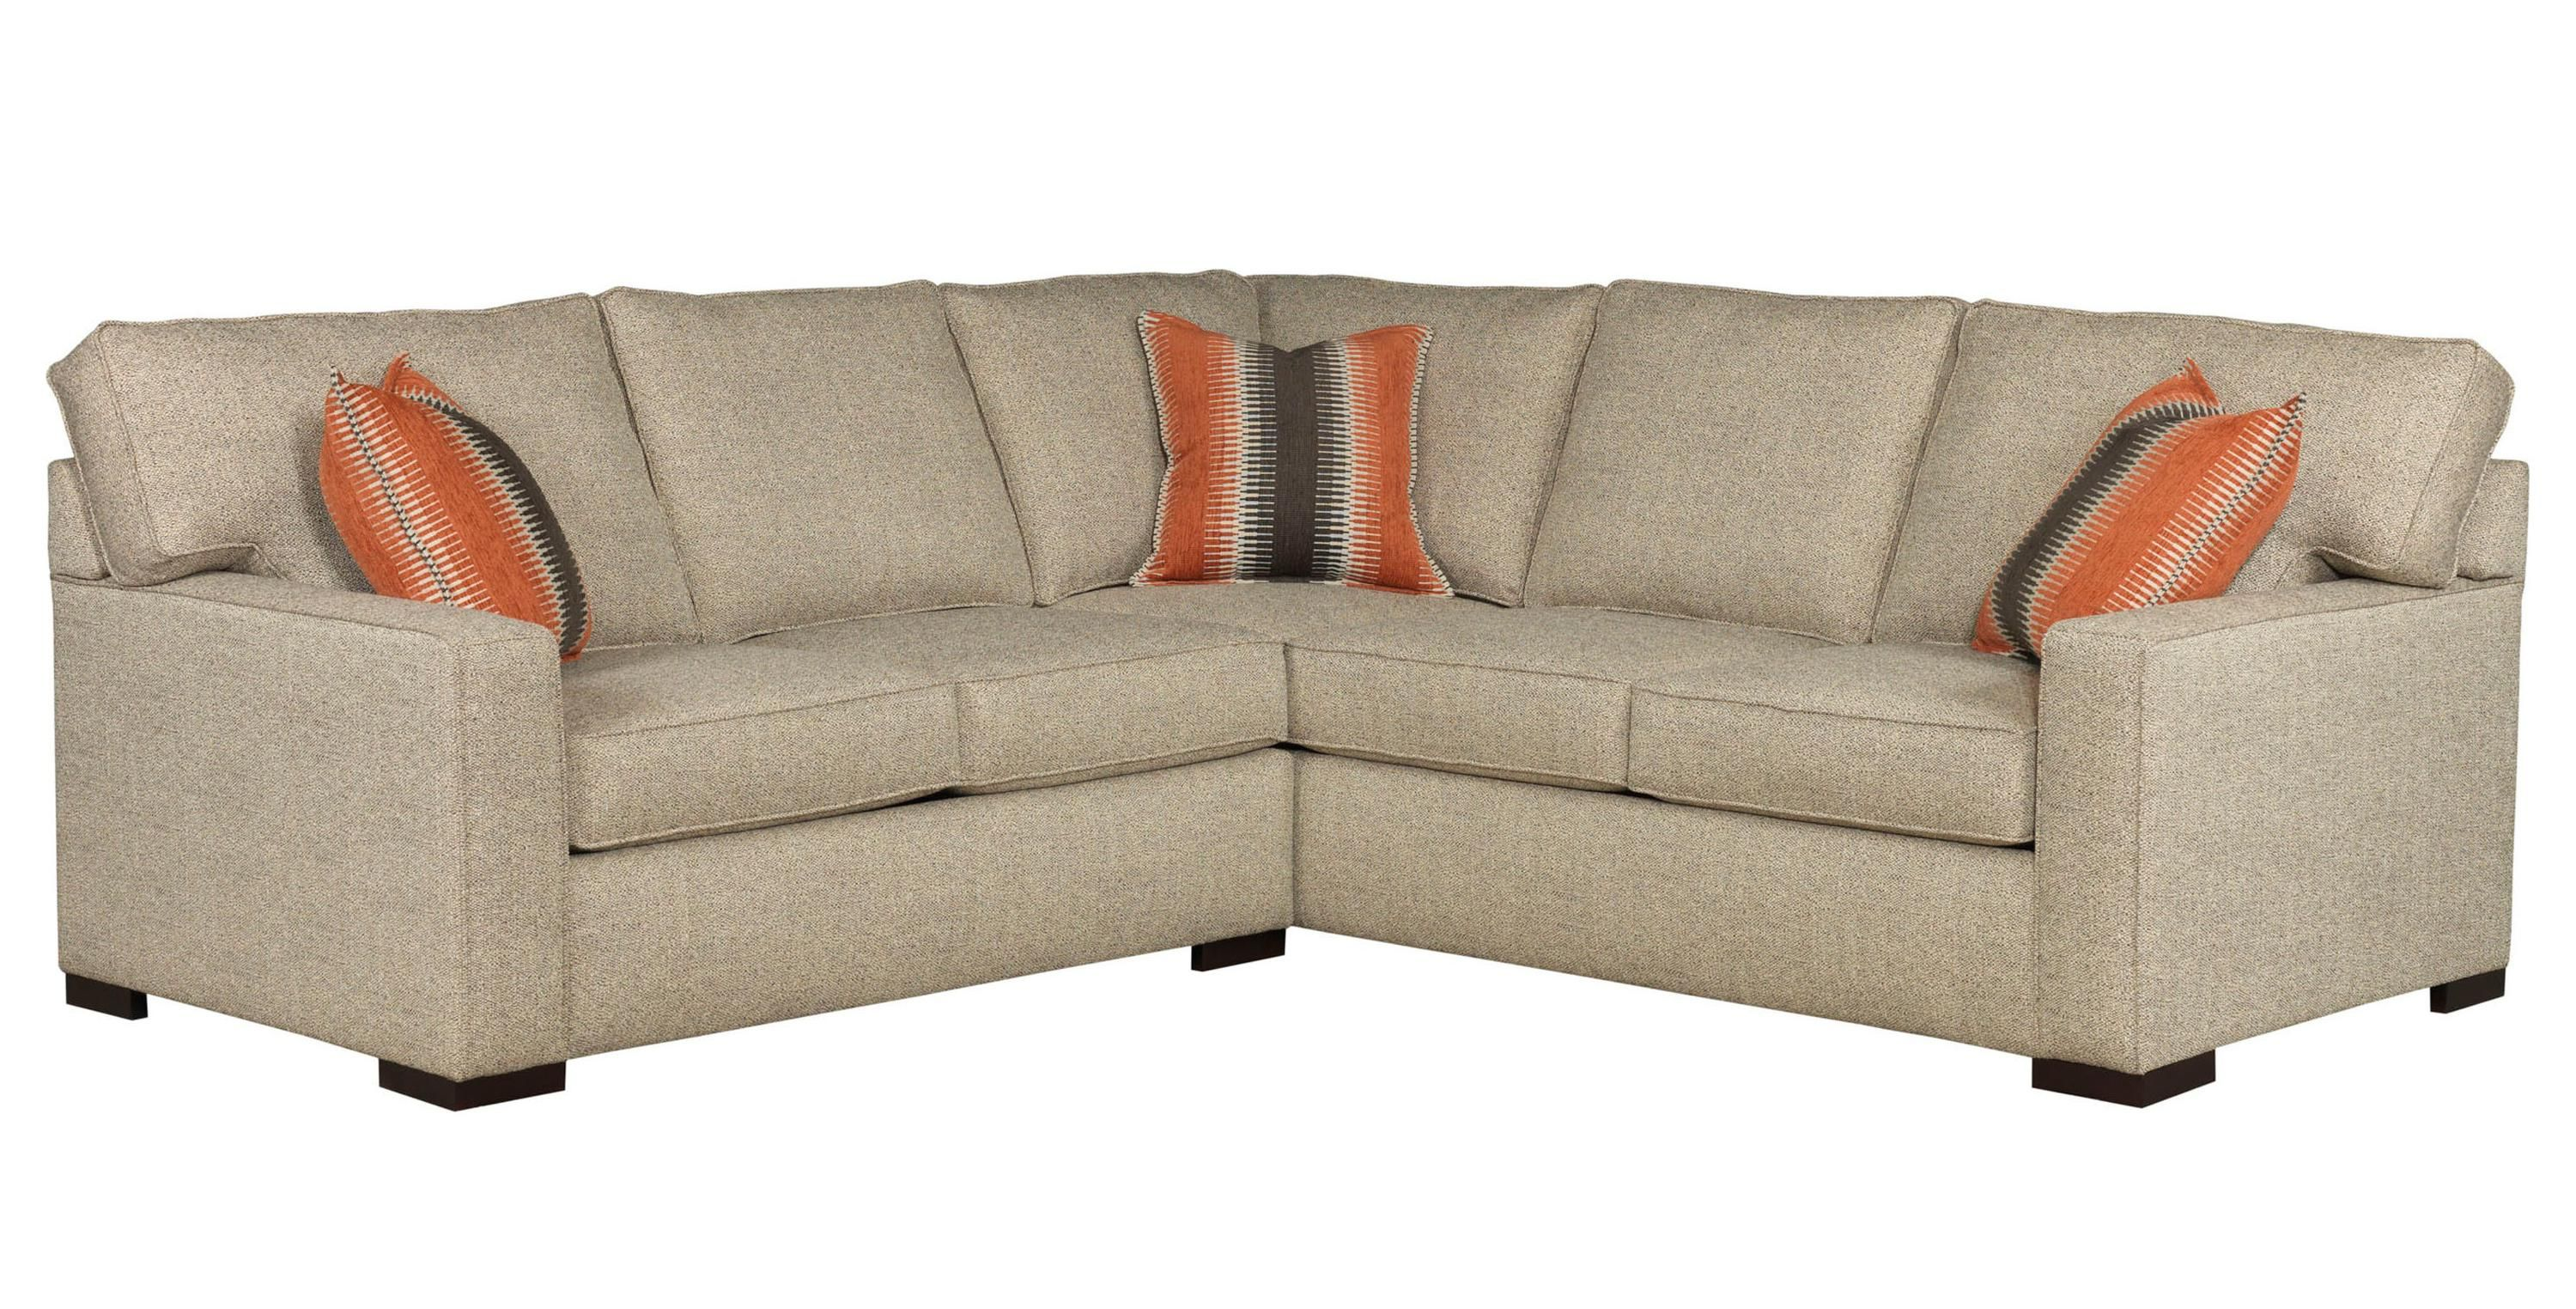 Raphael Two Piece Sectional Sofa By Broyhill Furniture 8x8